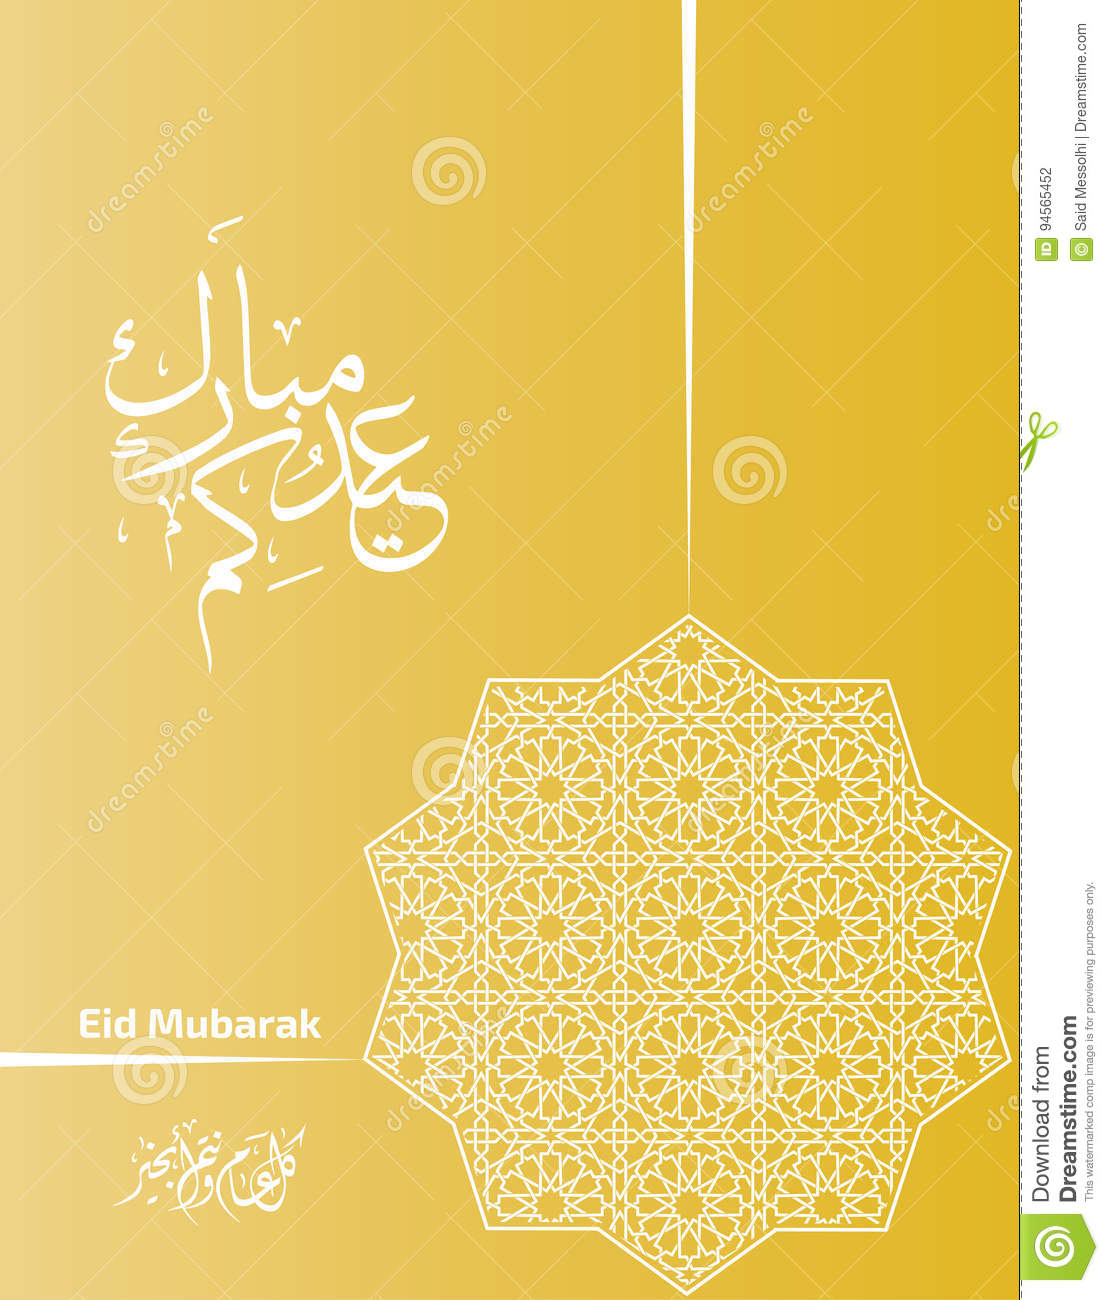 Greetings Card On The Occasion Of Eid Al Fitr To The Muslims Stock